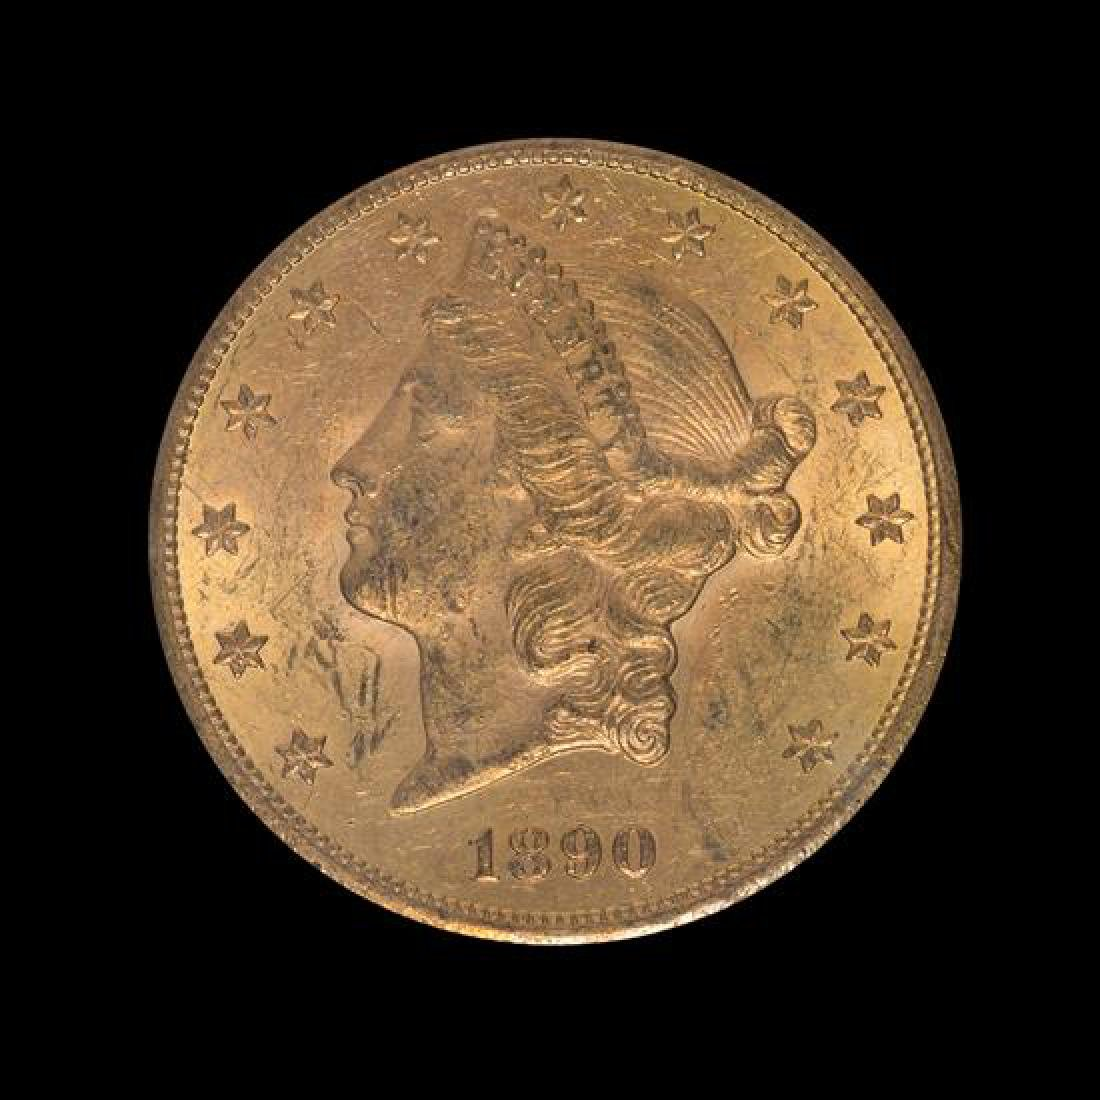 A United States 1890-CC Liberty Head $20 Gold Coin